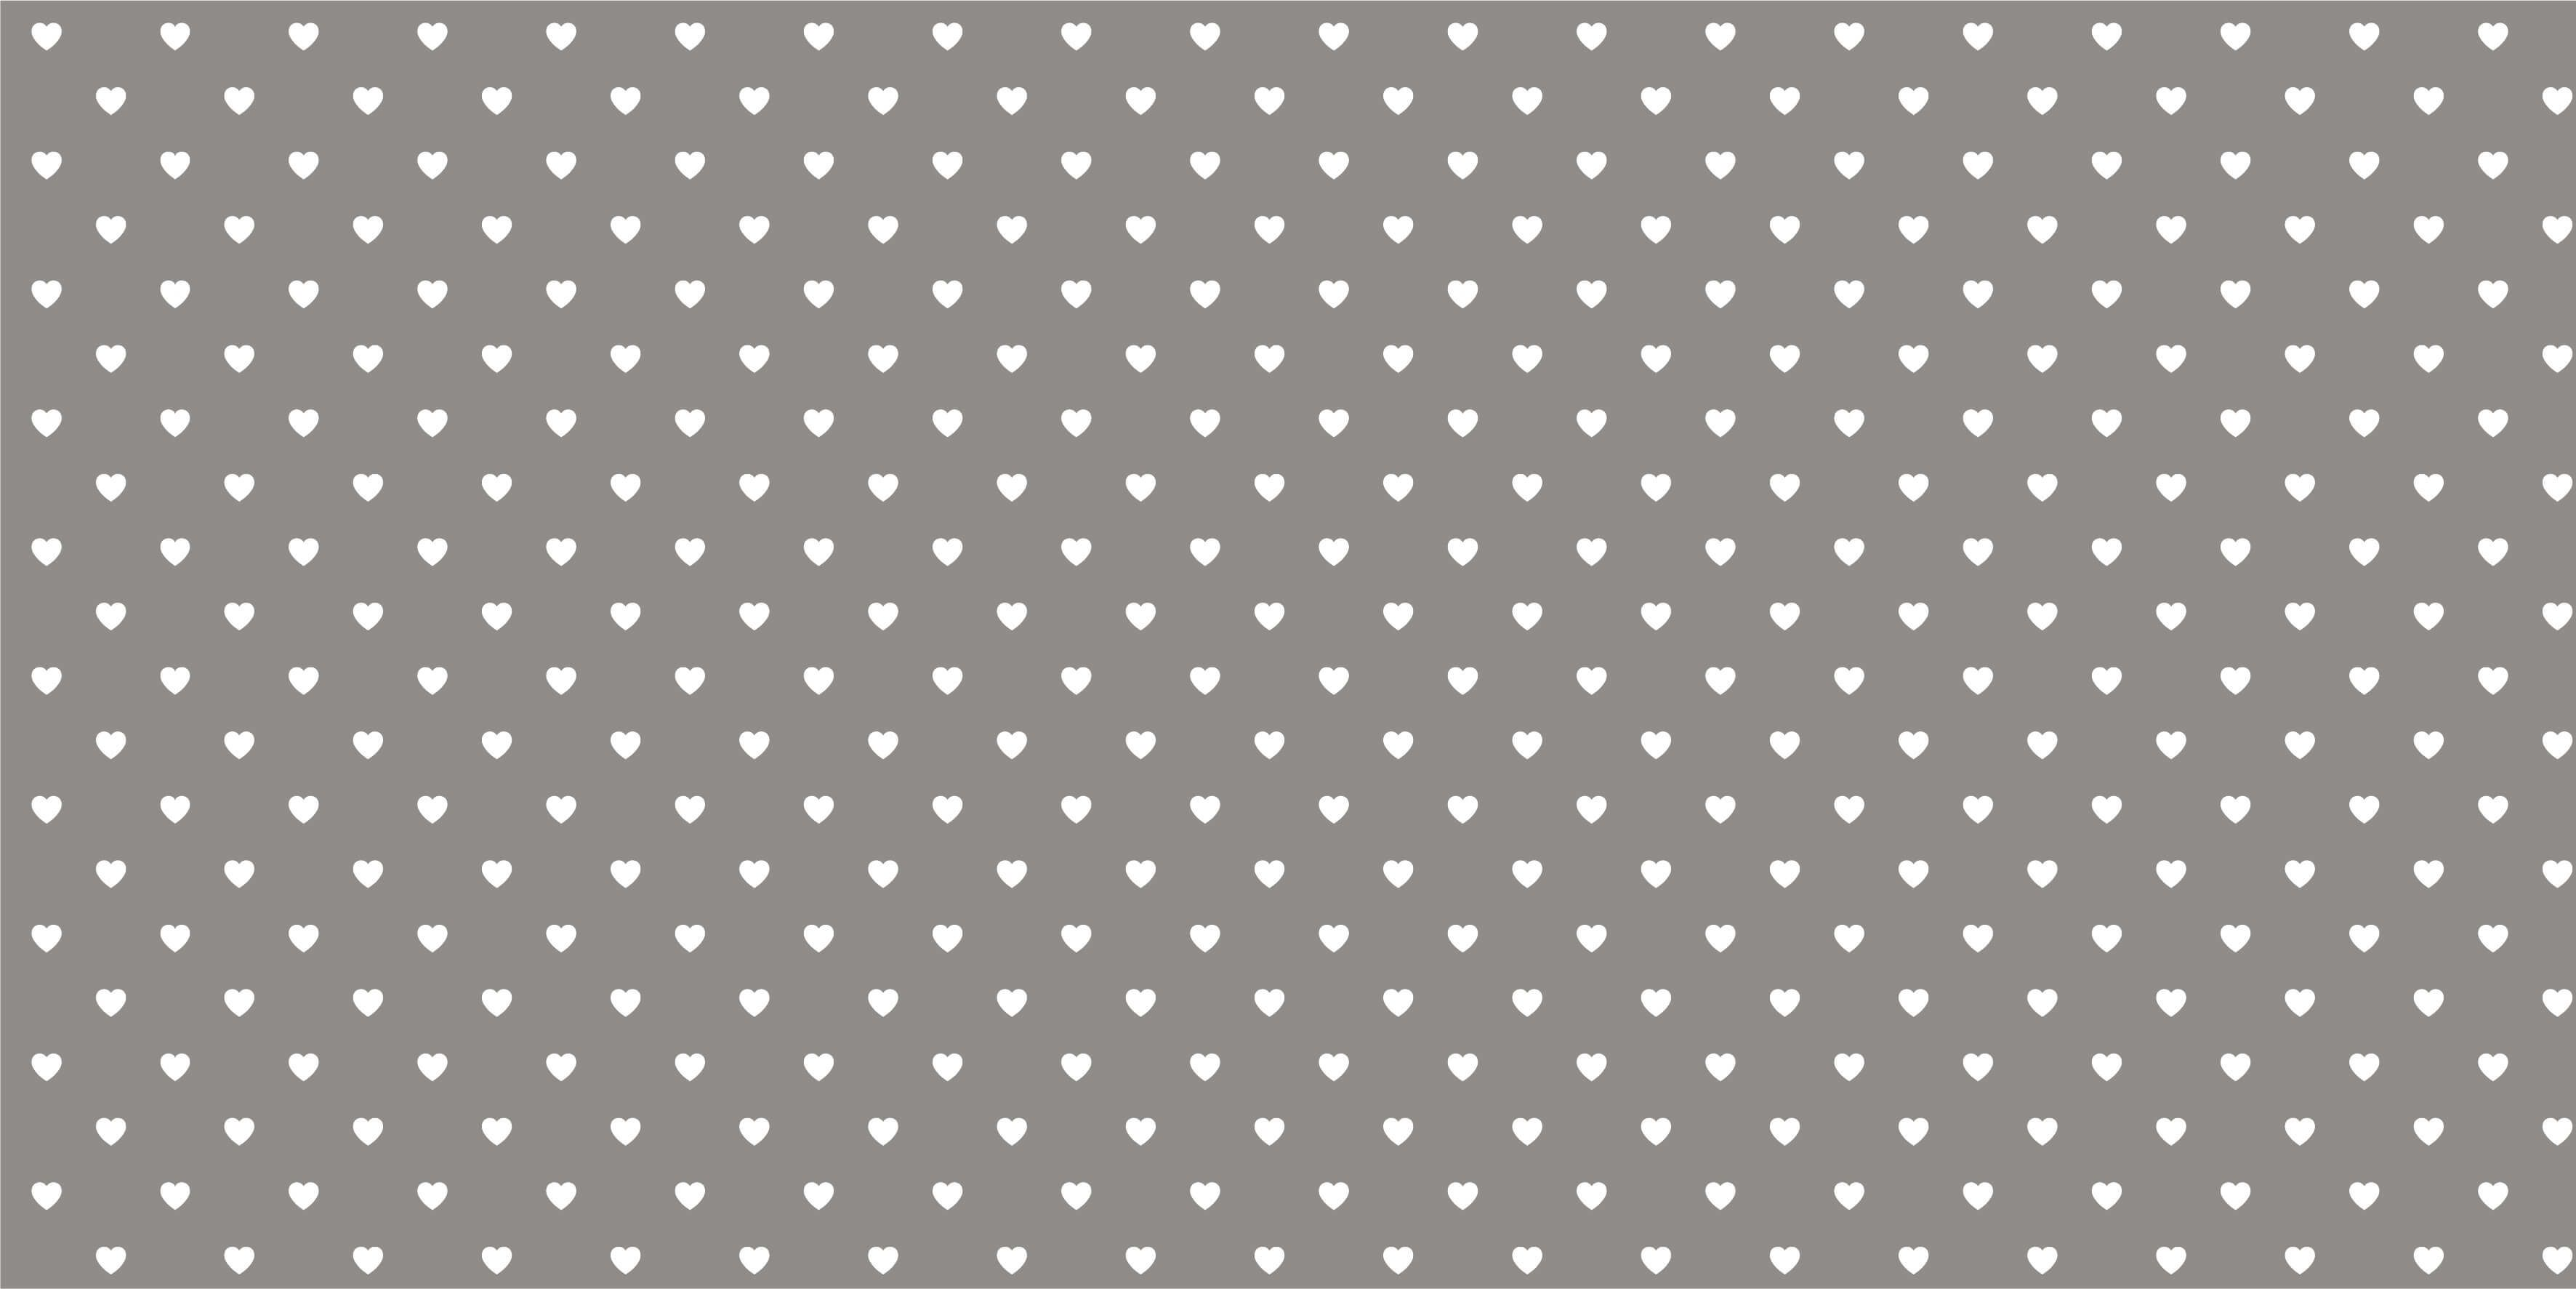 Baby wallpaper - Small white hearts - Baby room